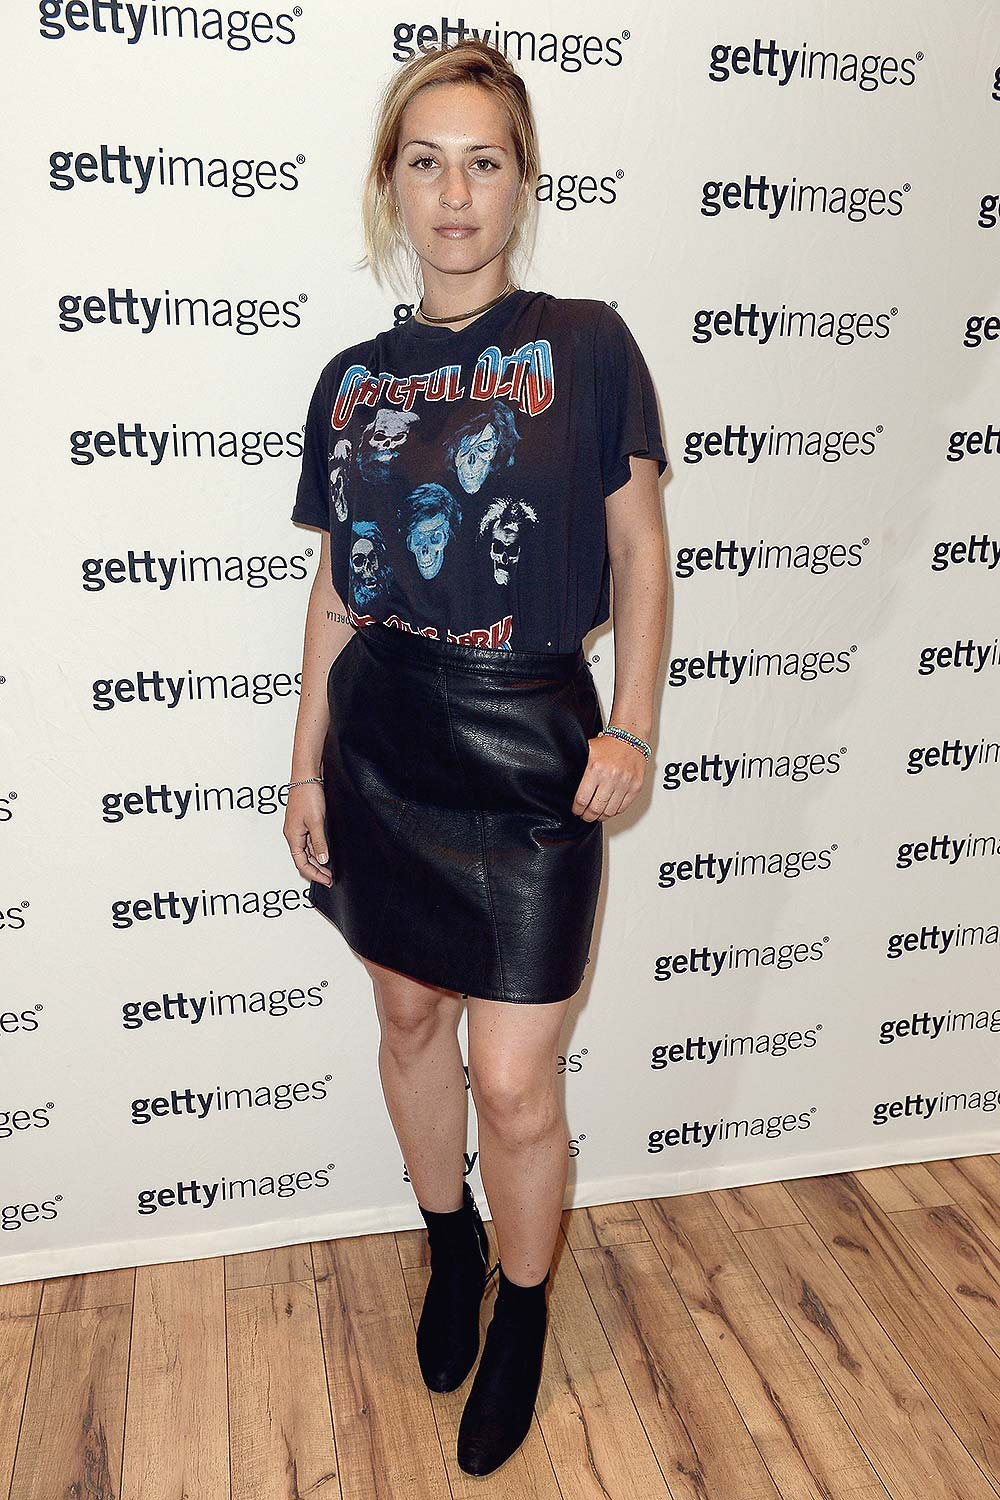 Jill Ferree attends a Patricia Field gathering to discuss her art fashion collection